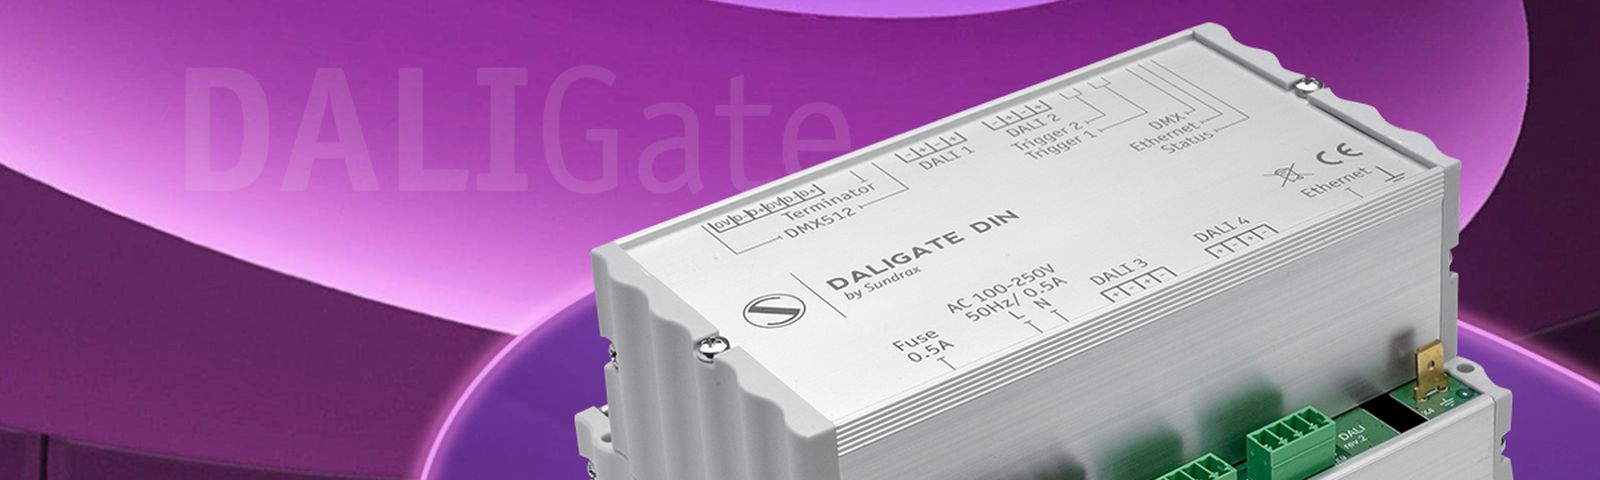 Firmware update for<br>DALIGate DIN: ArtNet/DMX/DALI converter